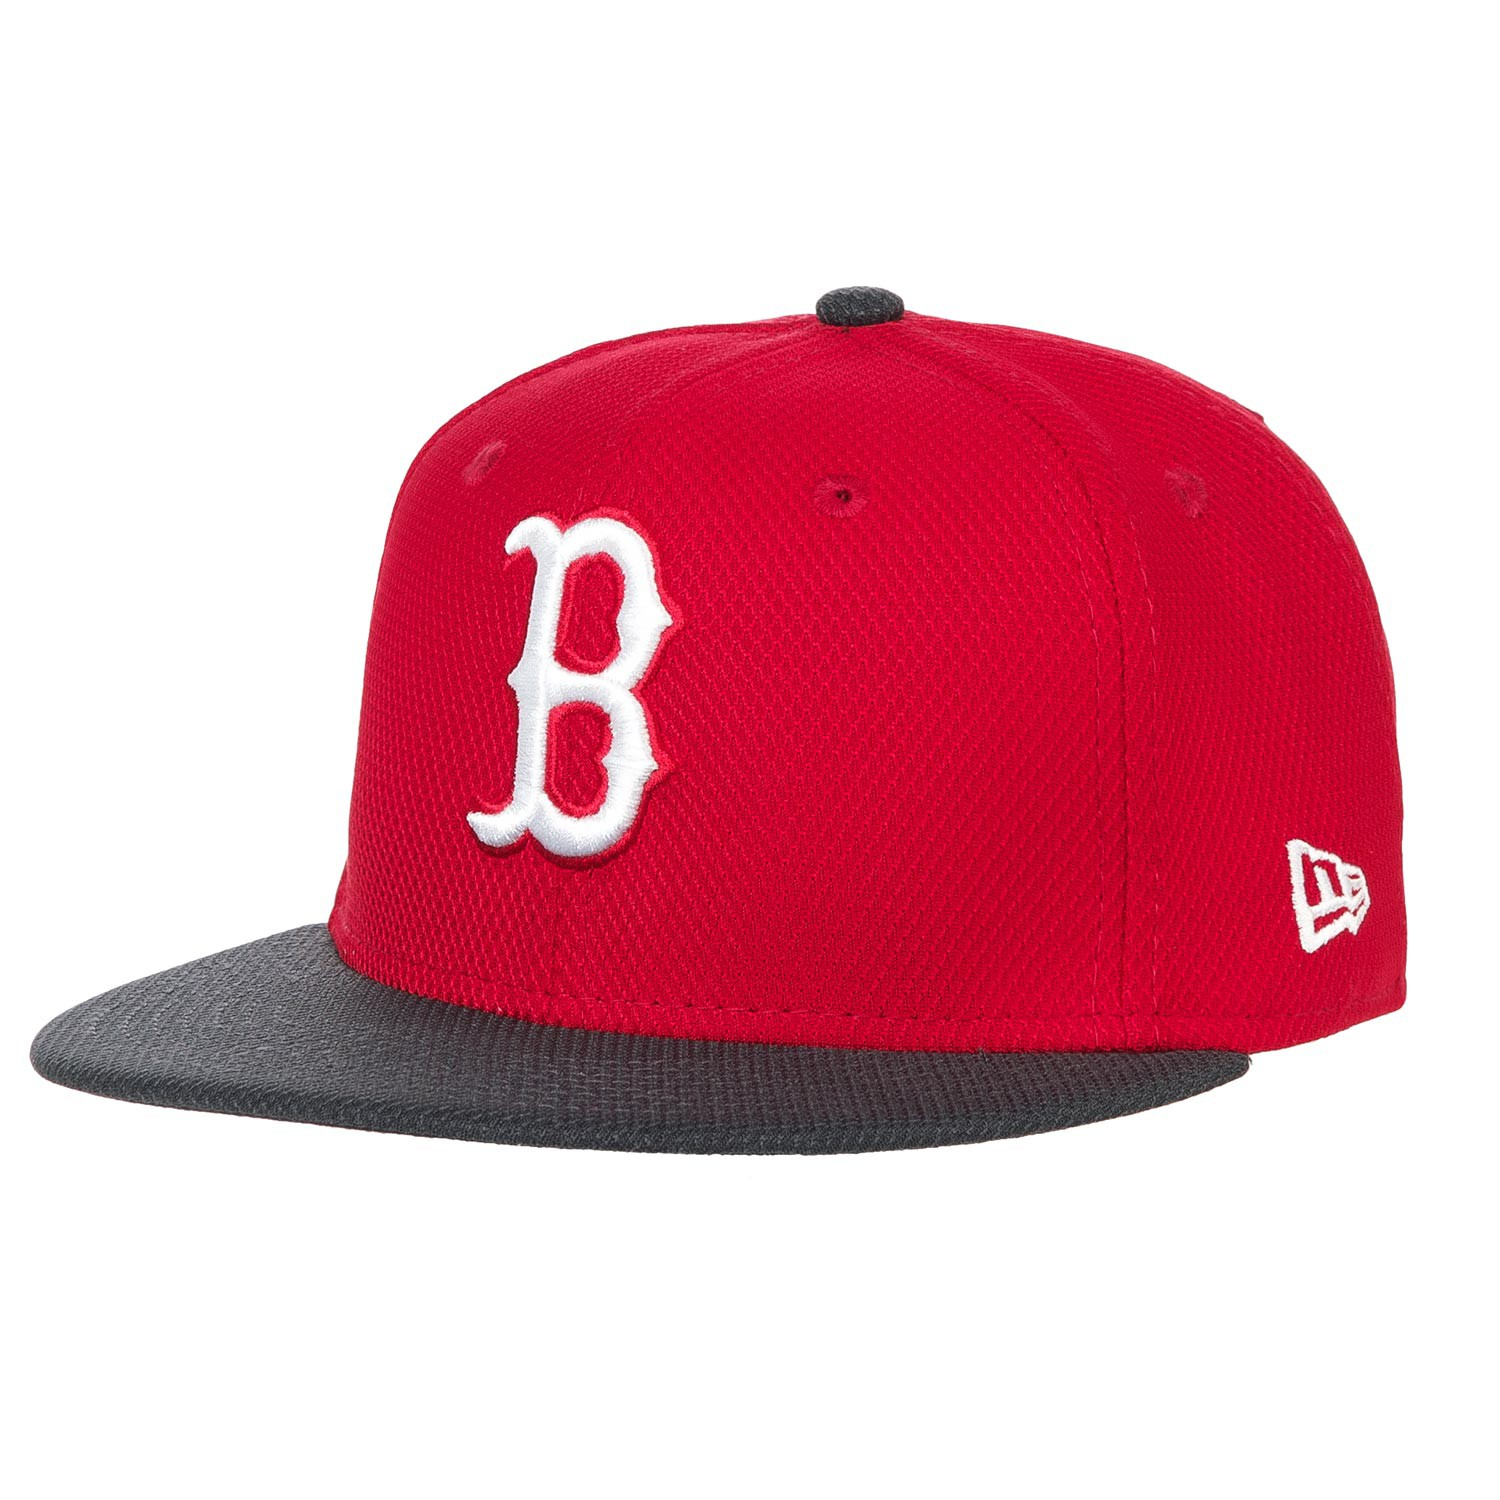 Kšiltovka New Era Boston Red Sox 9Fifty Diamond red/black